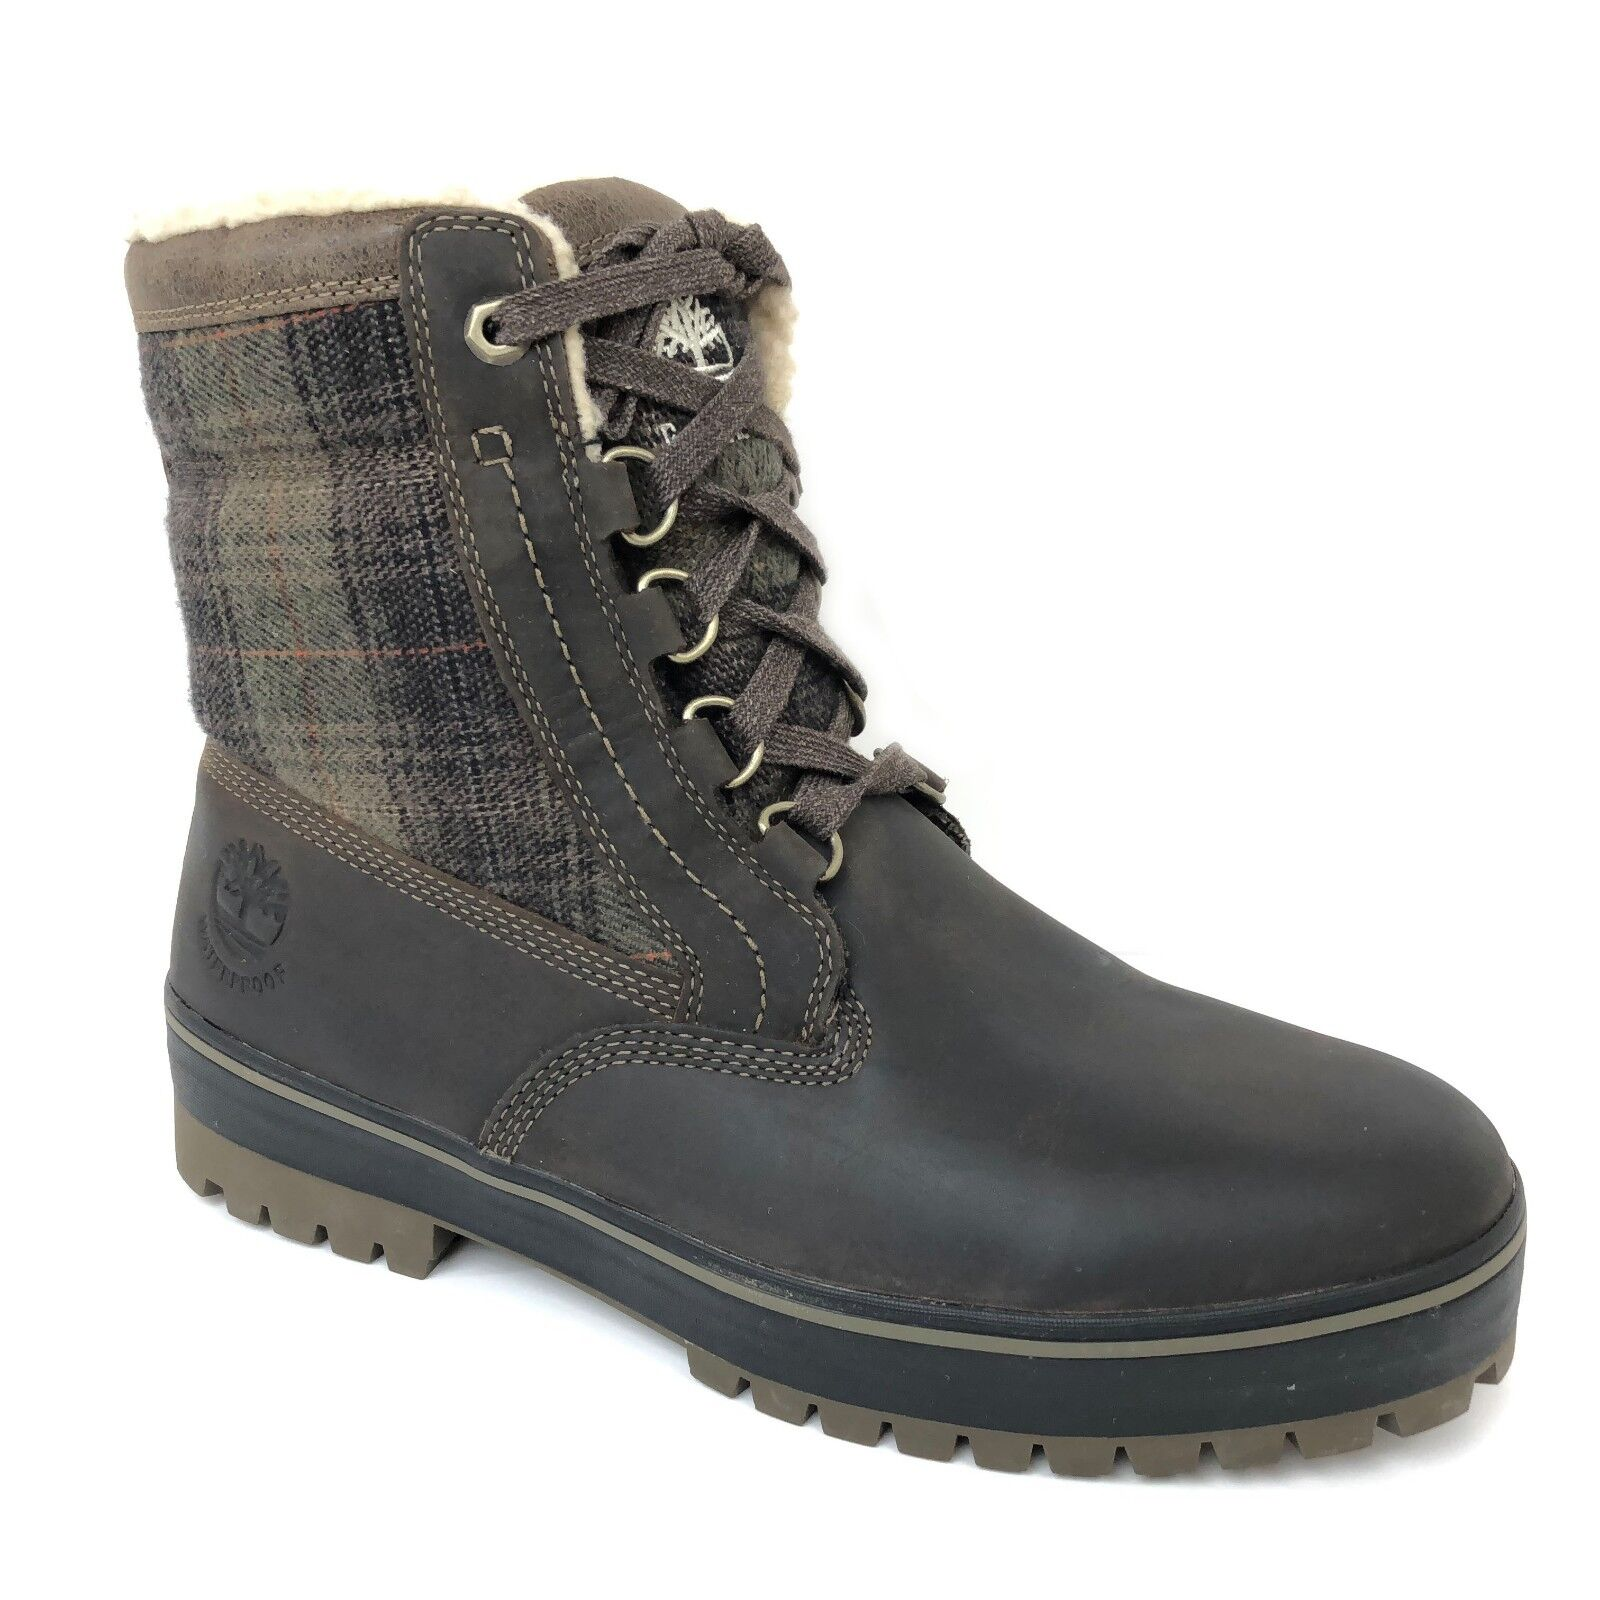 "Timberland Men's 6"" Spruce Mountain Brown Leather Waterproof"